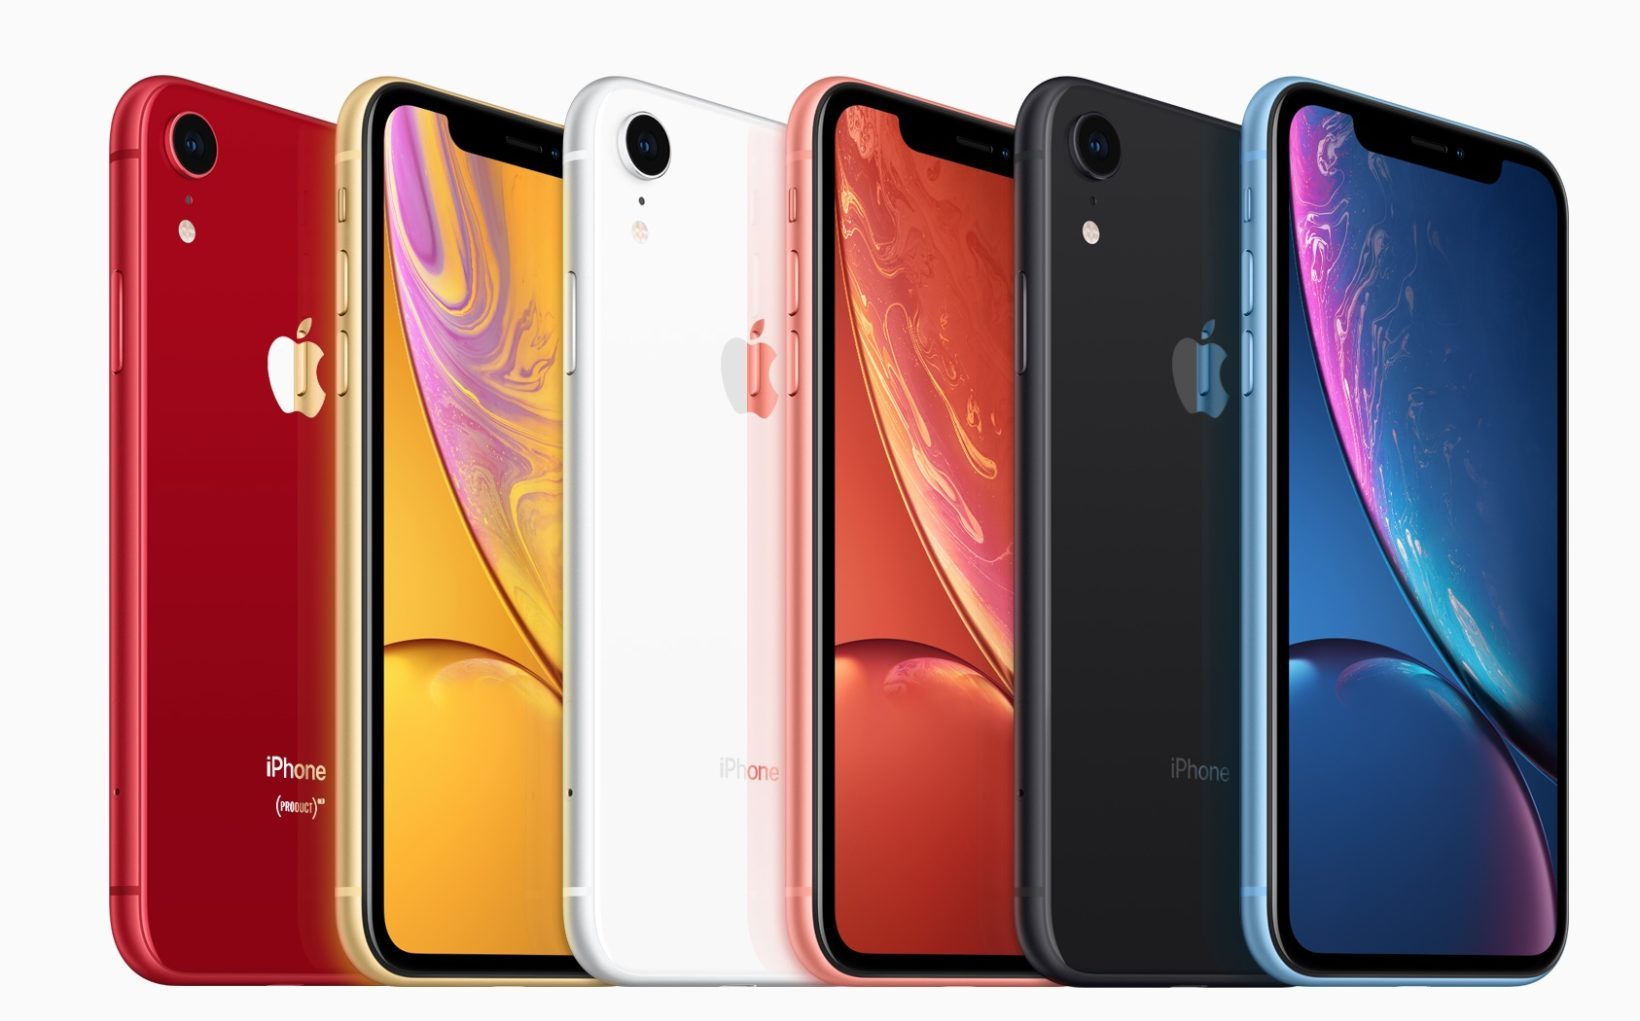 Lancio iPhone 2018, tutto su iPhone Xs, iPhone Xs Max e iPhone 9